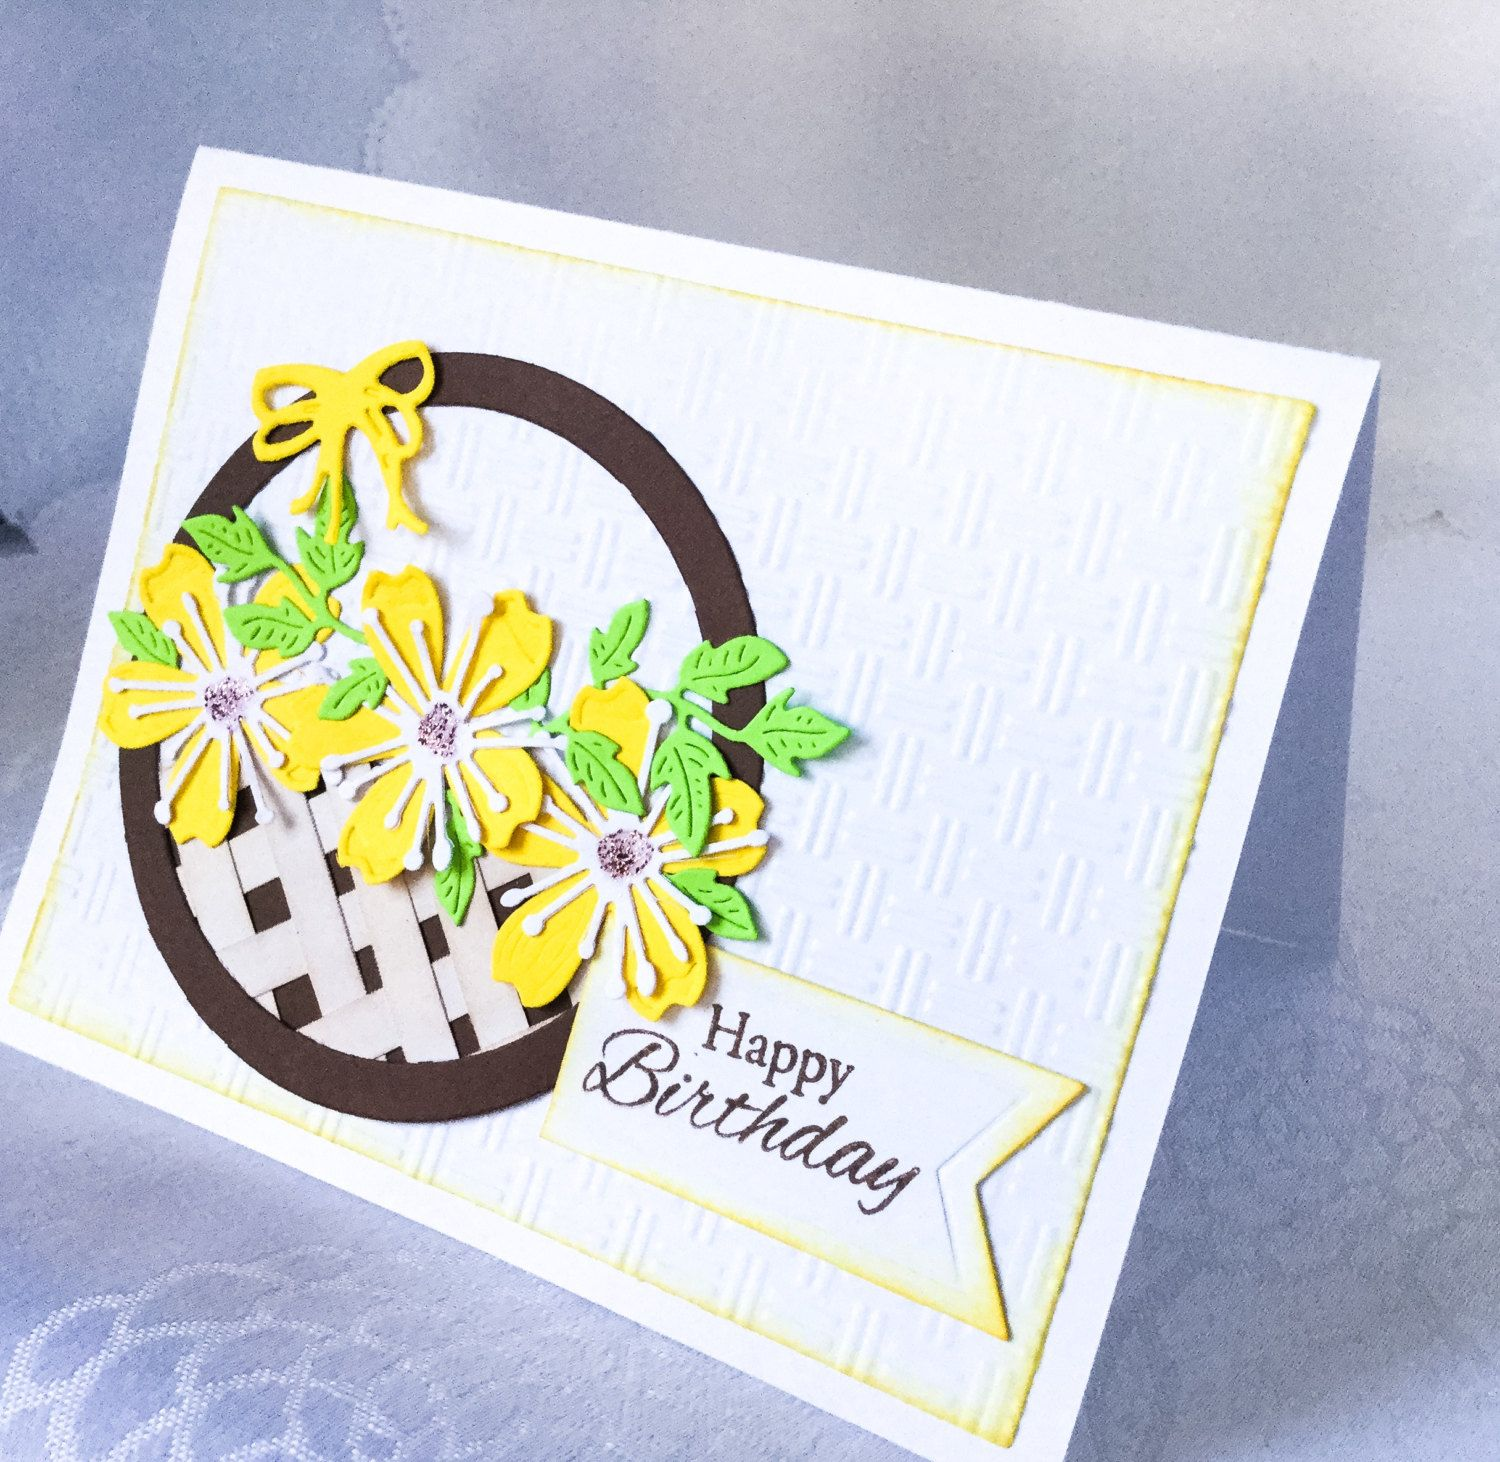 Set of handmade flower cards colorful birthday cards flowers in